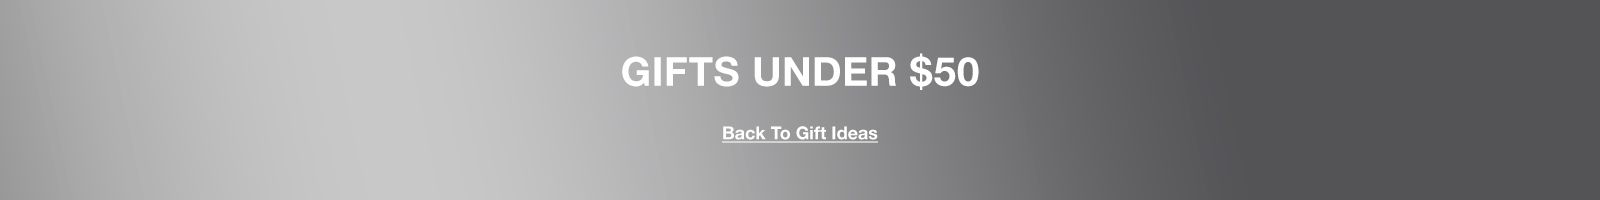 Gifts Under $50, Back To Gift Ideas